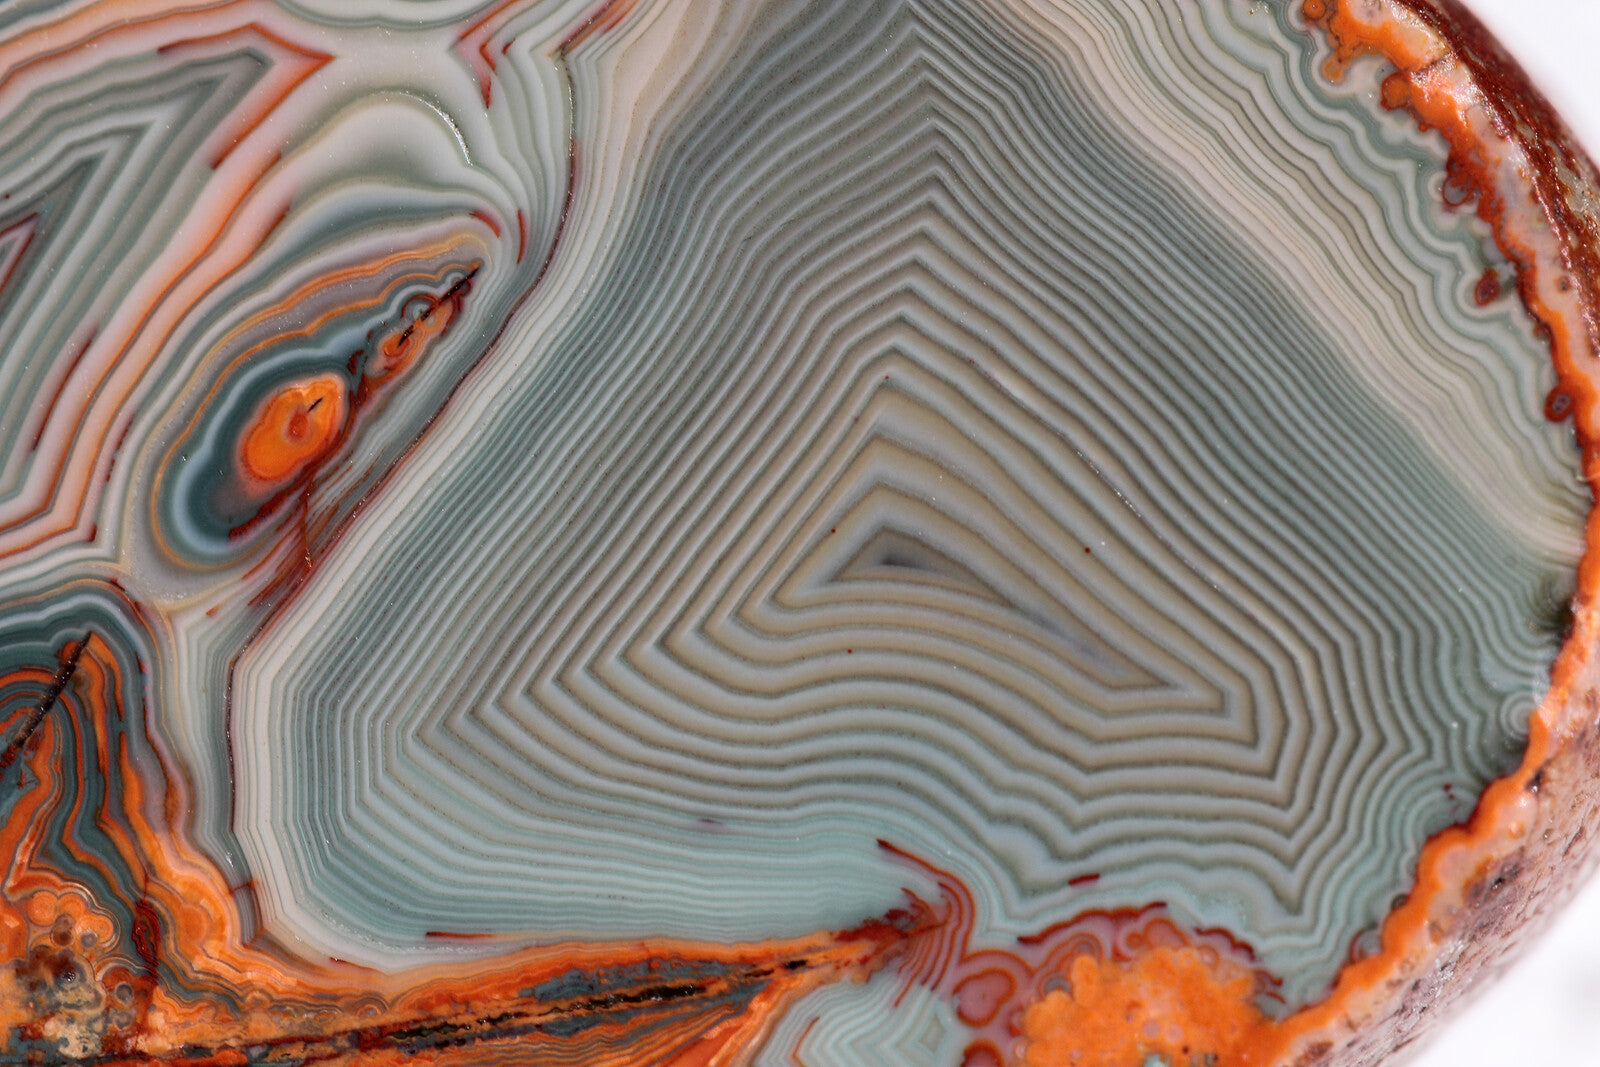 Agate example of fractal patterns in nature picture graphic image